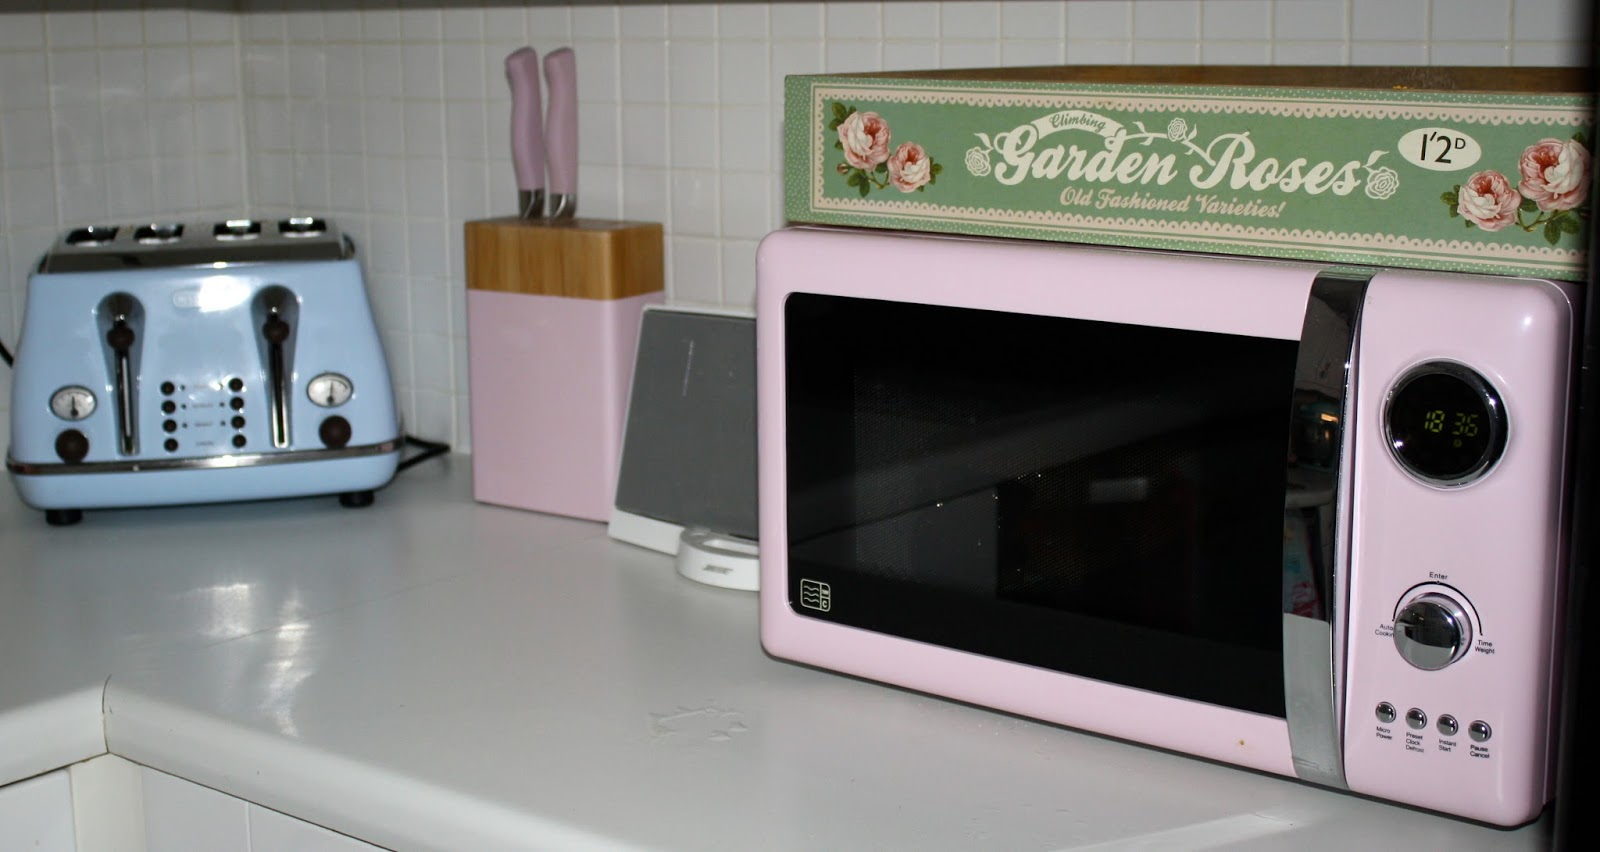 Coloured Microwaves For Sale Bestmicrowave